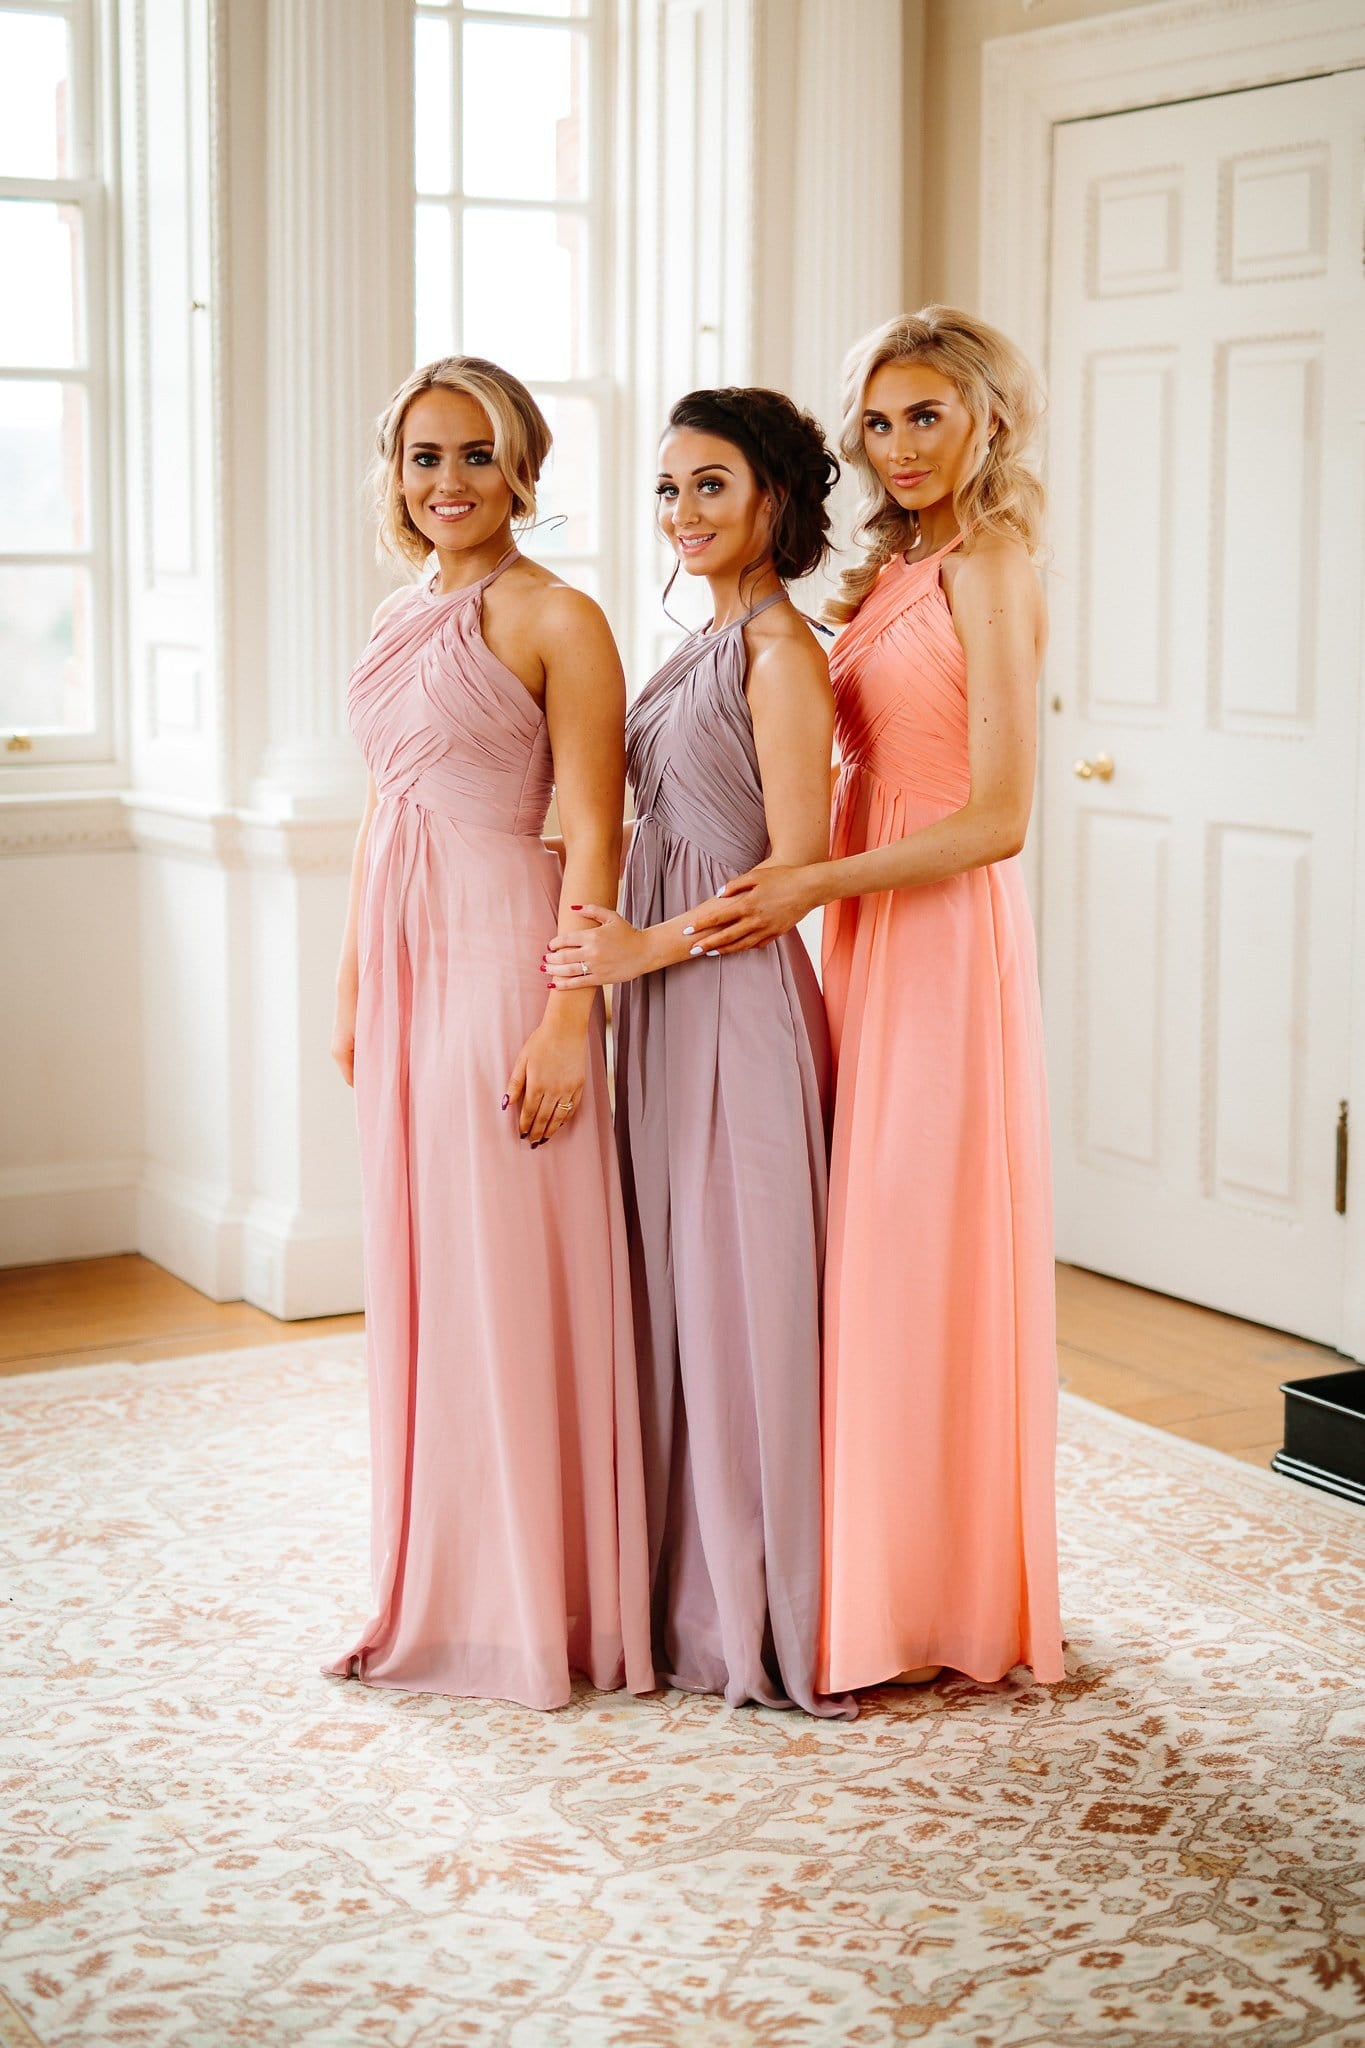 Meadow Dress | Halter Neck Roushin Chiffon Bridesmaid Dress - That Special Day Bridal Warehouse